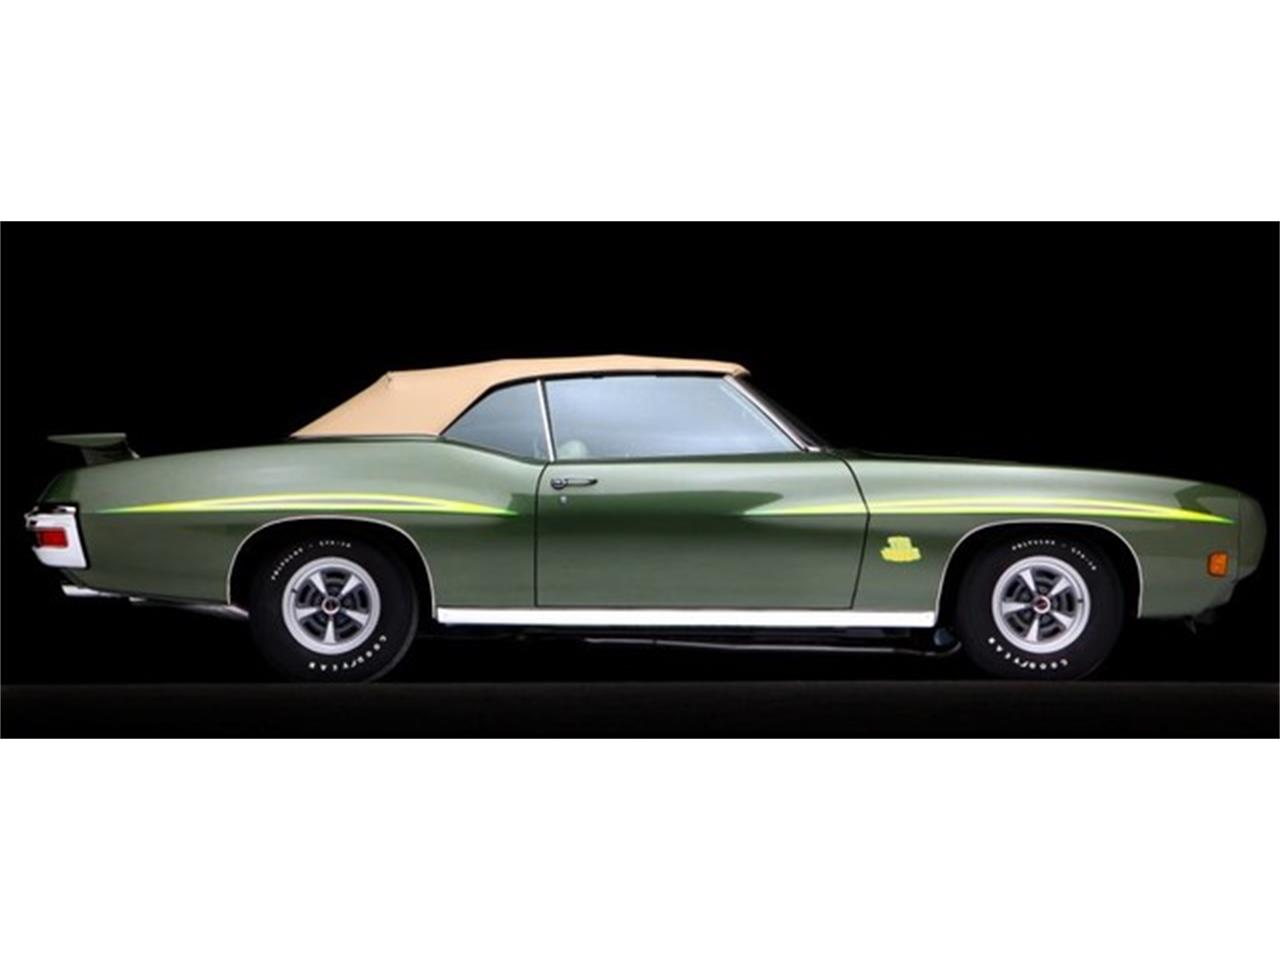 Large Picture of 1970 GTO (The Judge) located in New York - $219,000.00 Offered by Prestige Motor Car Co. - PU25